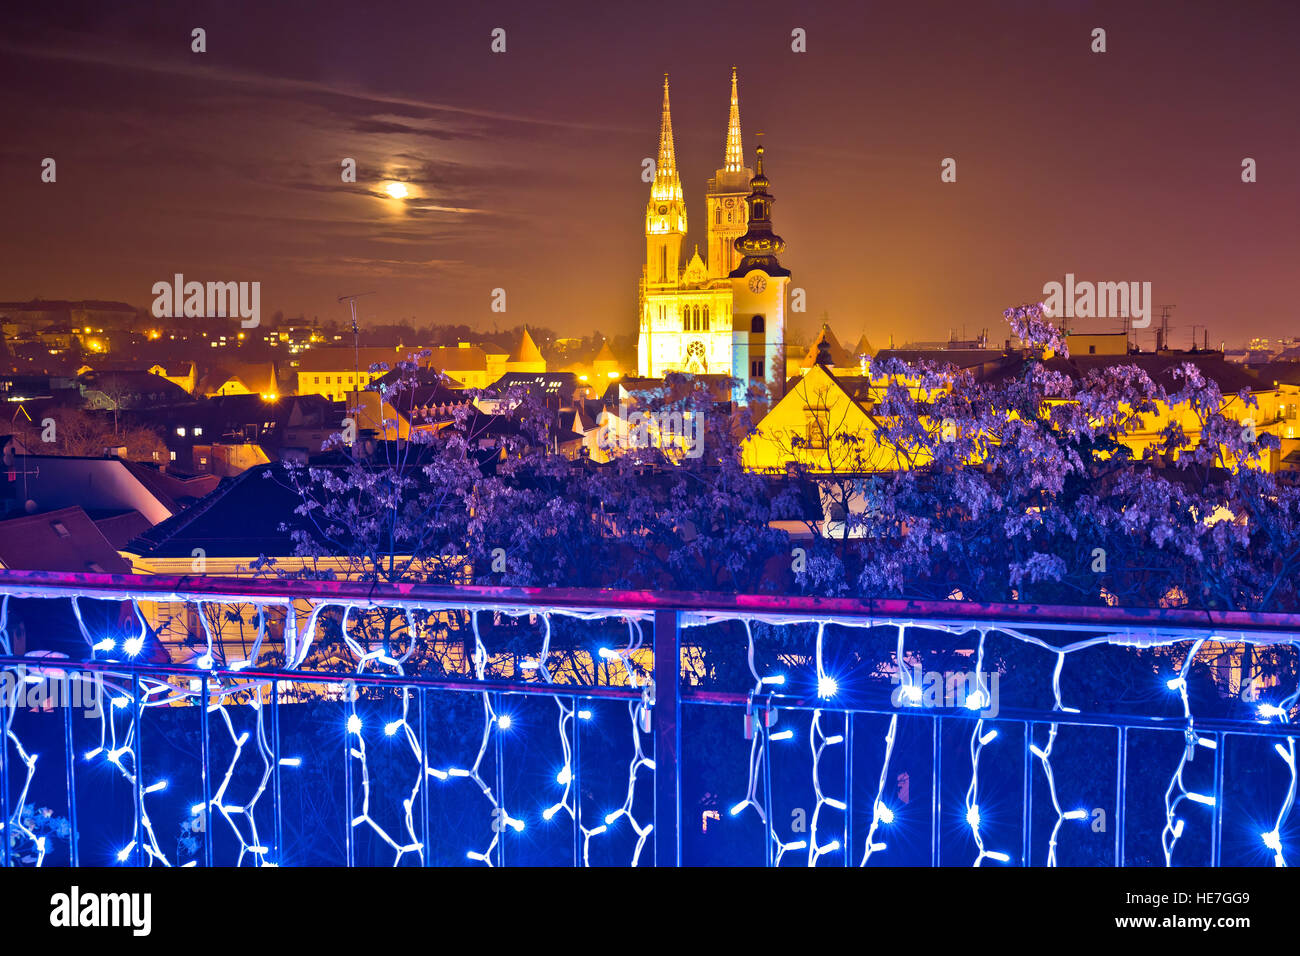 Zagreb cathedral evening advent view, famous landmarks of Croatian capital city - Stock Image